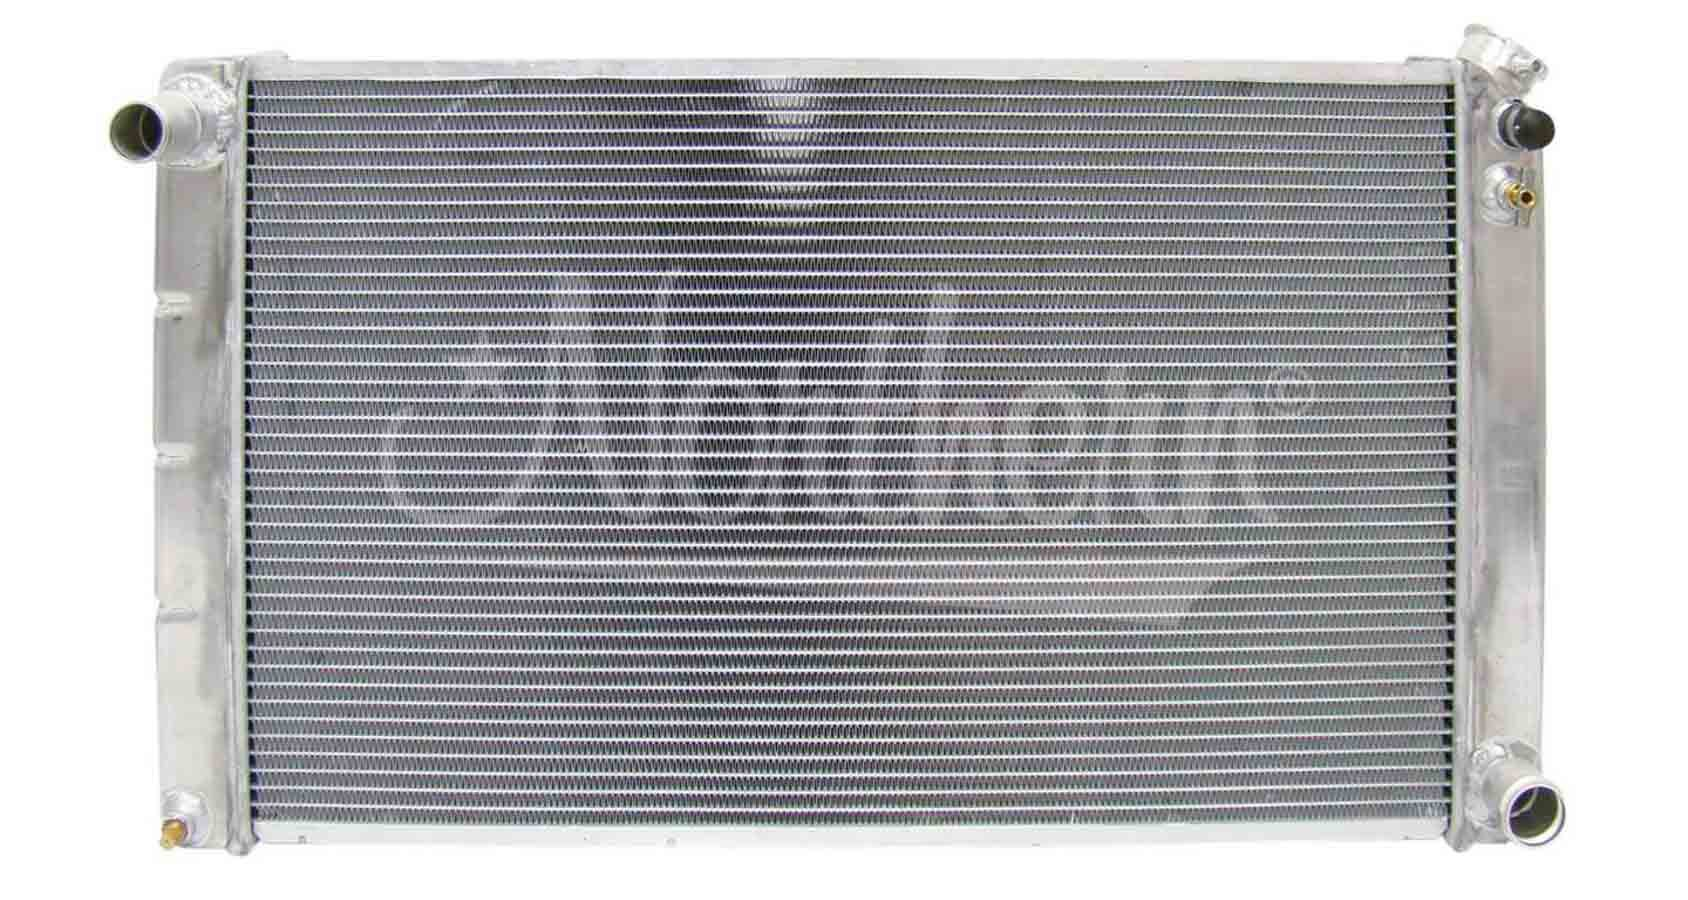 Northern Radiator 205055 Radiator, 33 in W x 18-3/8 in H x 3-1/8 in D, Driver Side Inlet, Passenger Side Outlet, Aluminum, Natural, Manual, GM 1964-98, Each